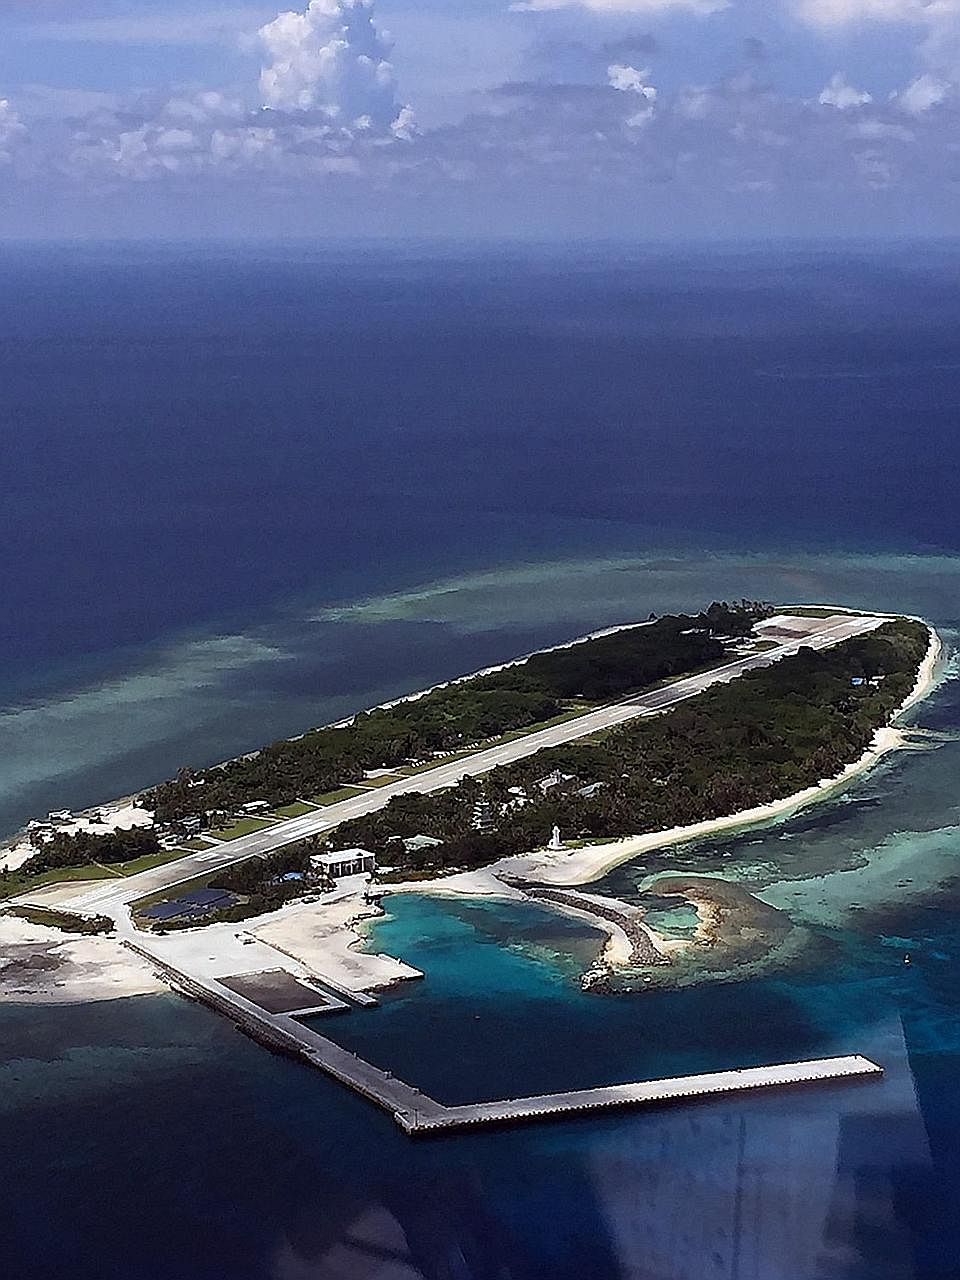 Taiping Island (above) was ruled to be a rock by the arbitral tribunal instead of an island with its own exclusive economic zone, giving the tribunal the basis to make its subsequent ruling against China's claims over territories in the South China S